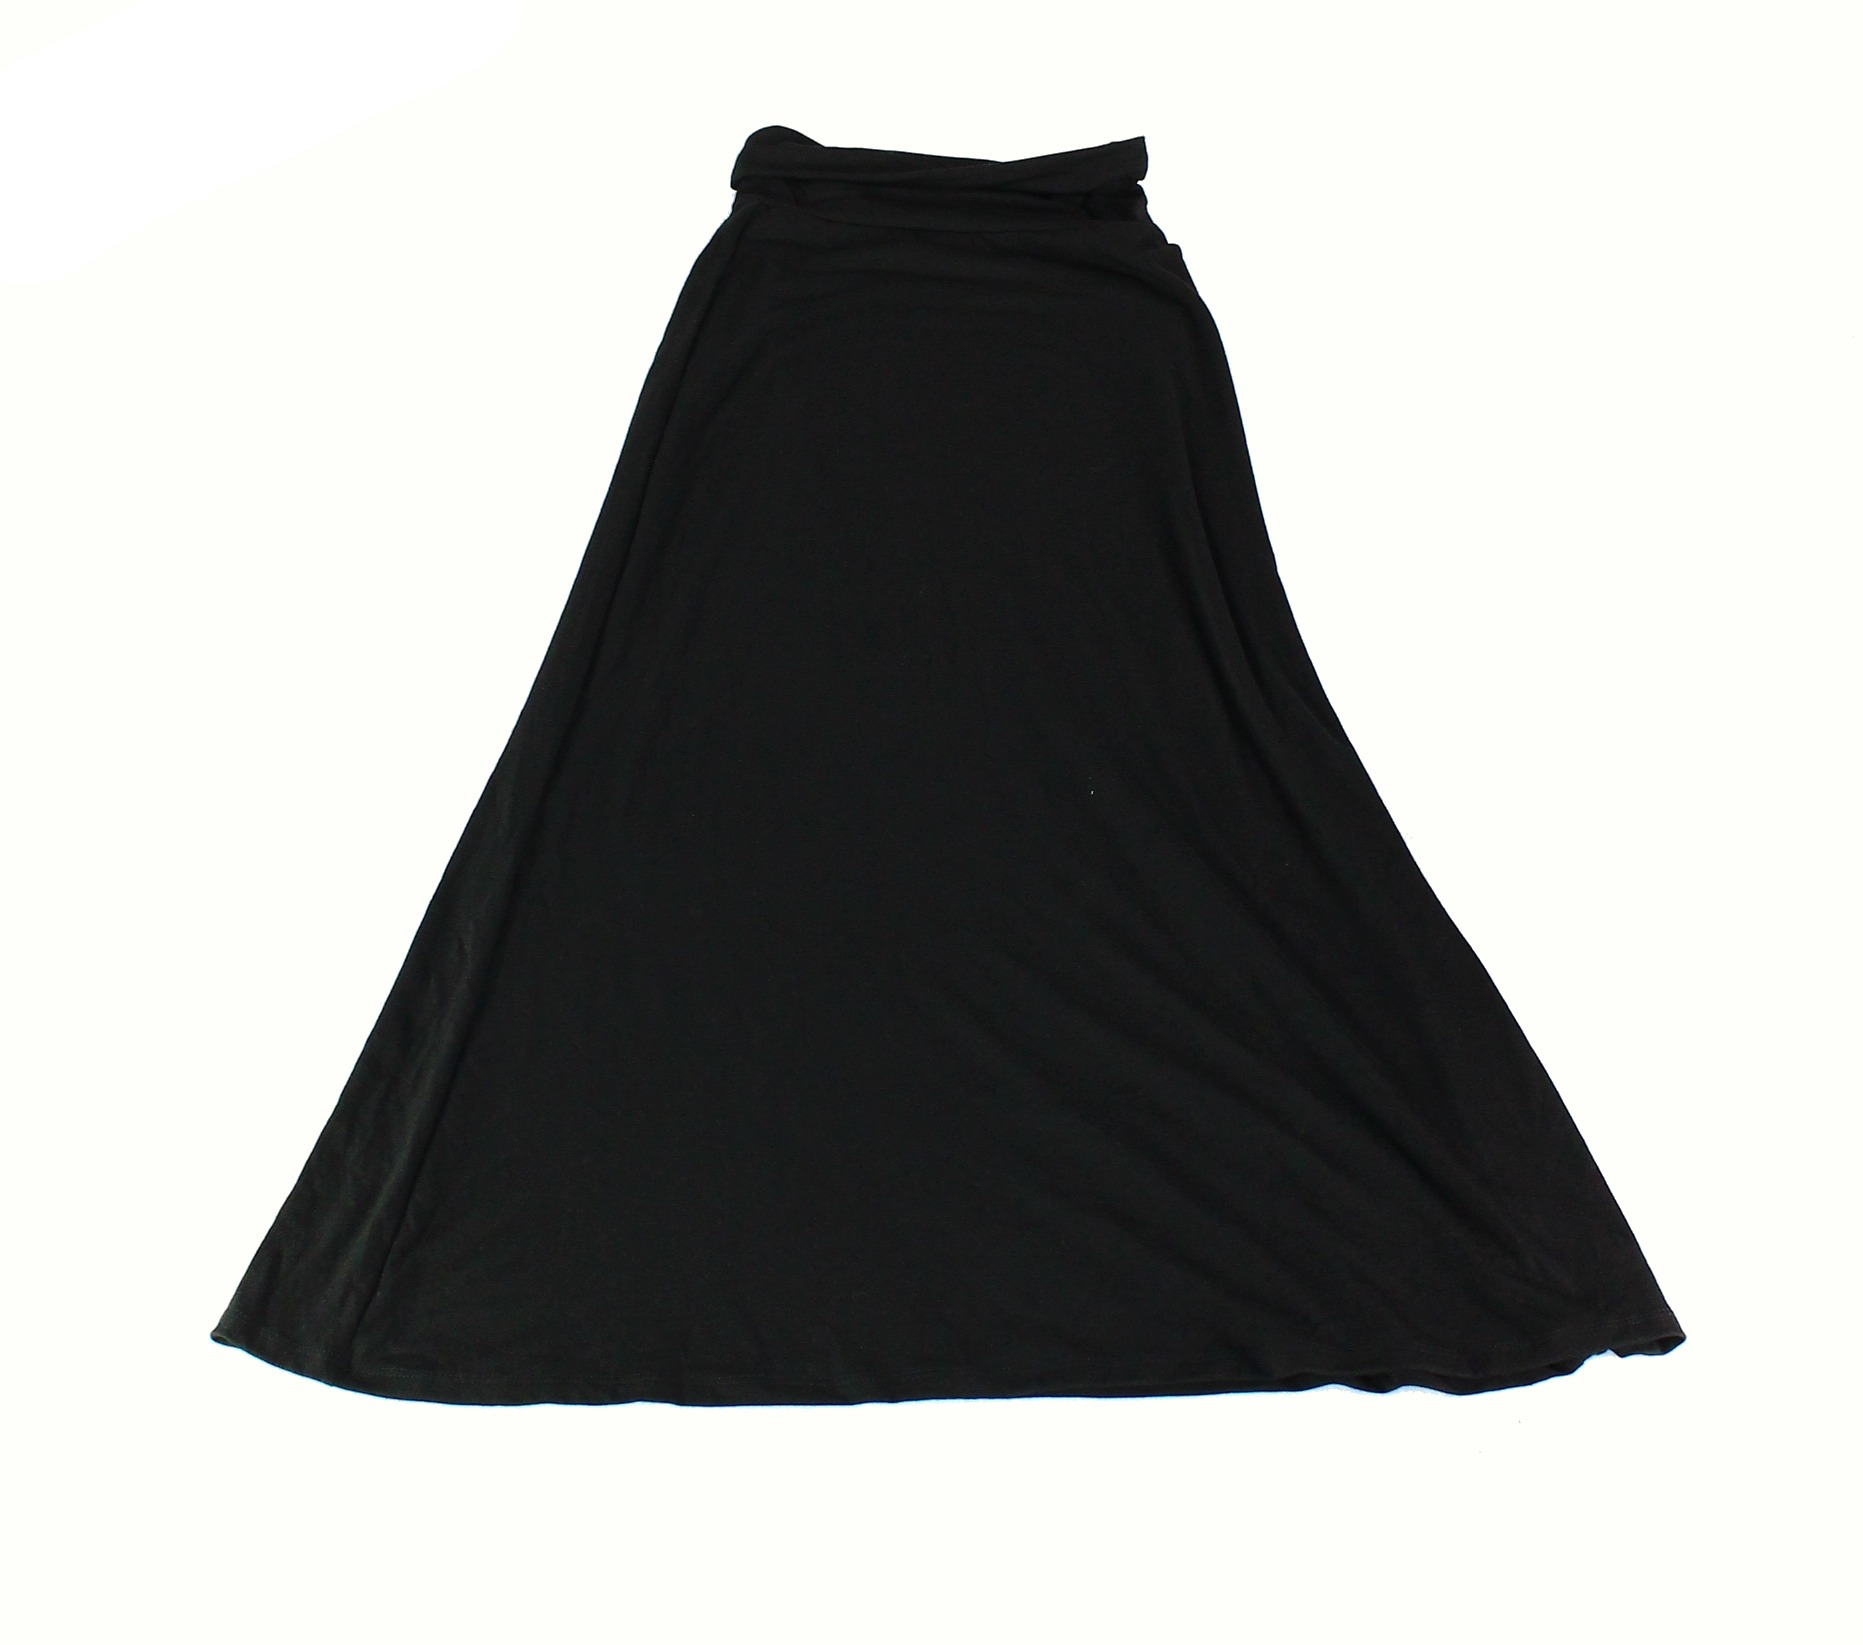 bff369690d3c1 Lily White NEW Black Womens Size XS Pull On Fold Over Stretch Knit Skirt 345